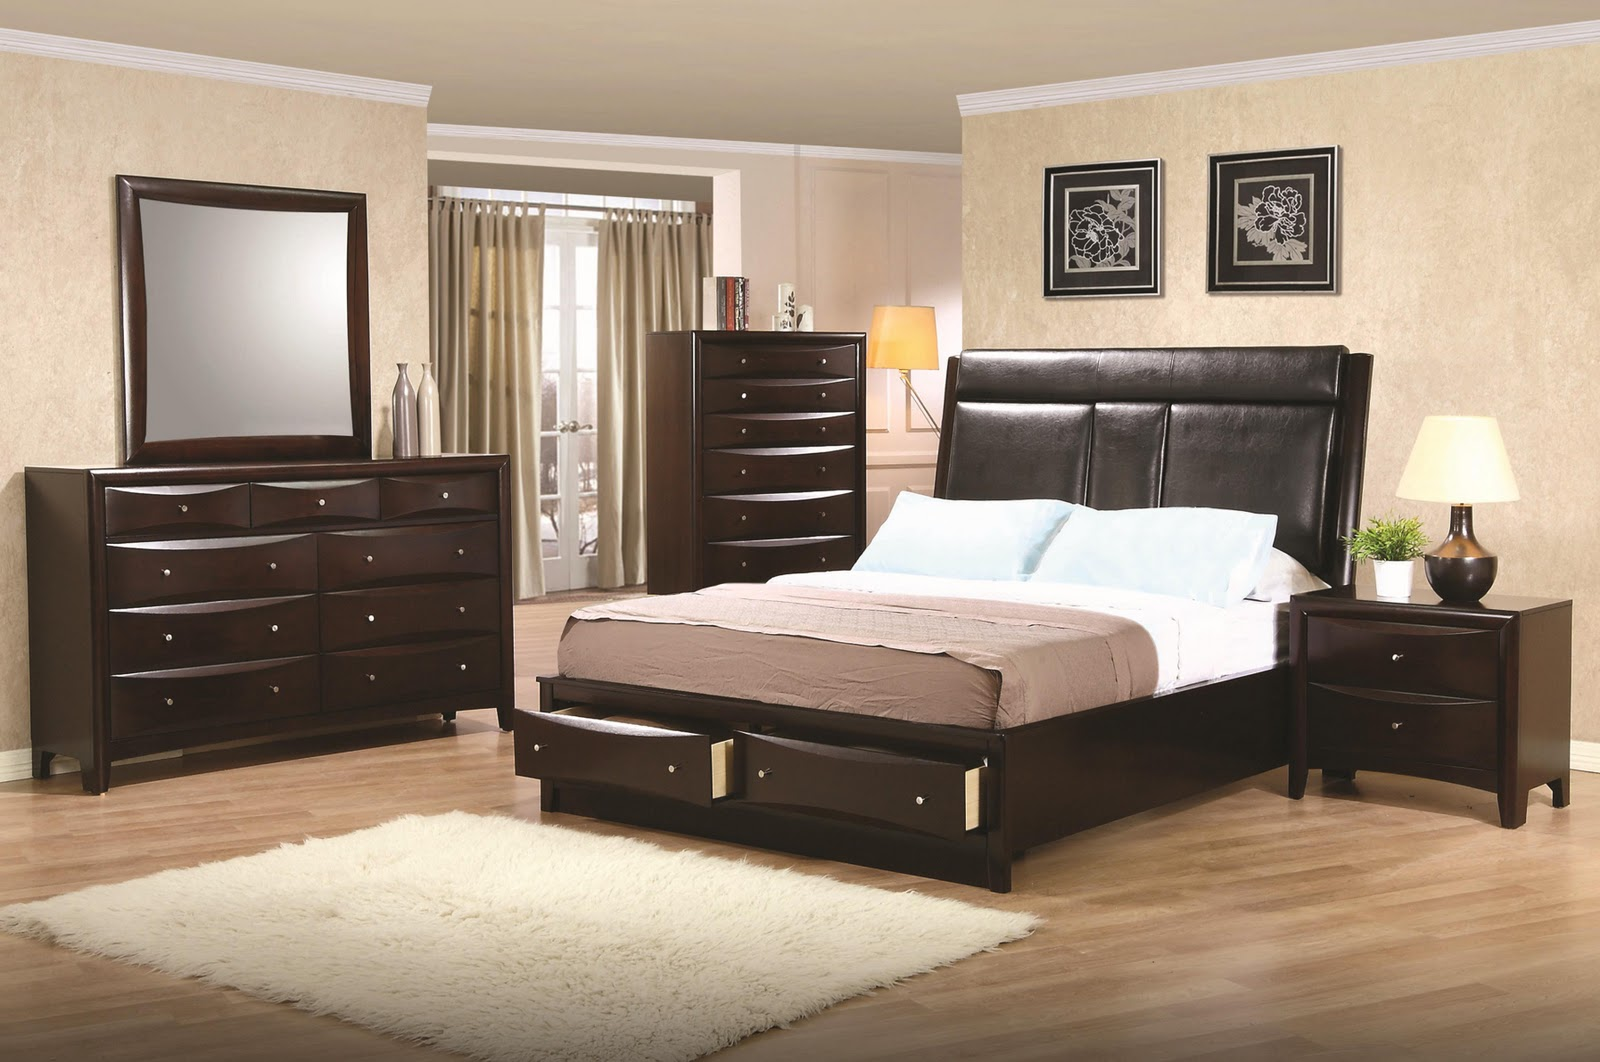 Storage Beds Bedroom Sets 1600 x 1062